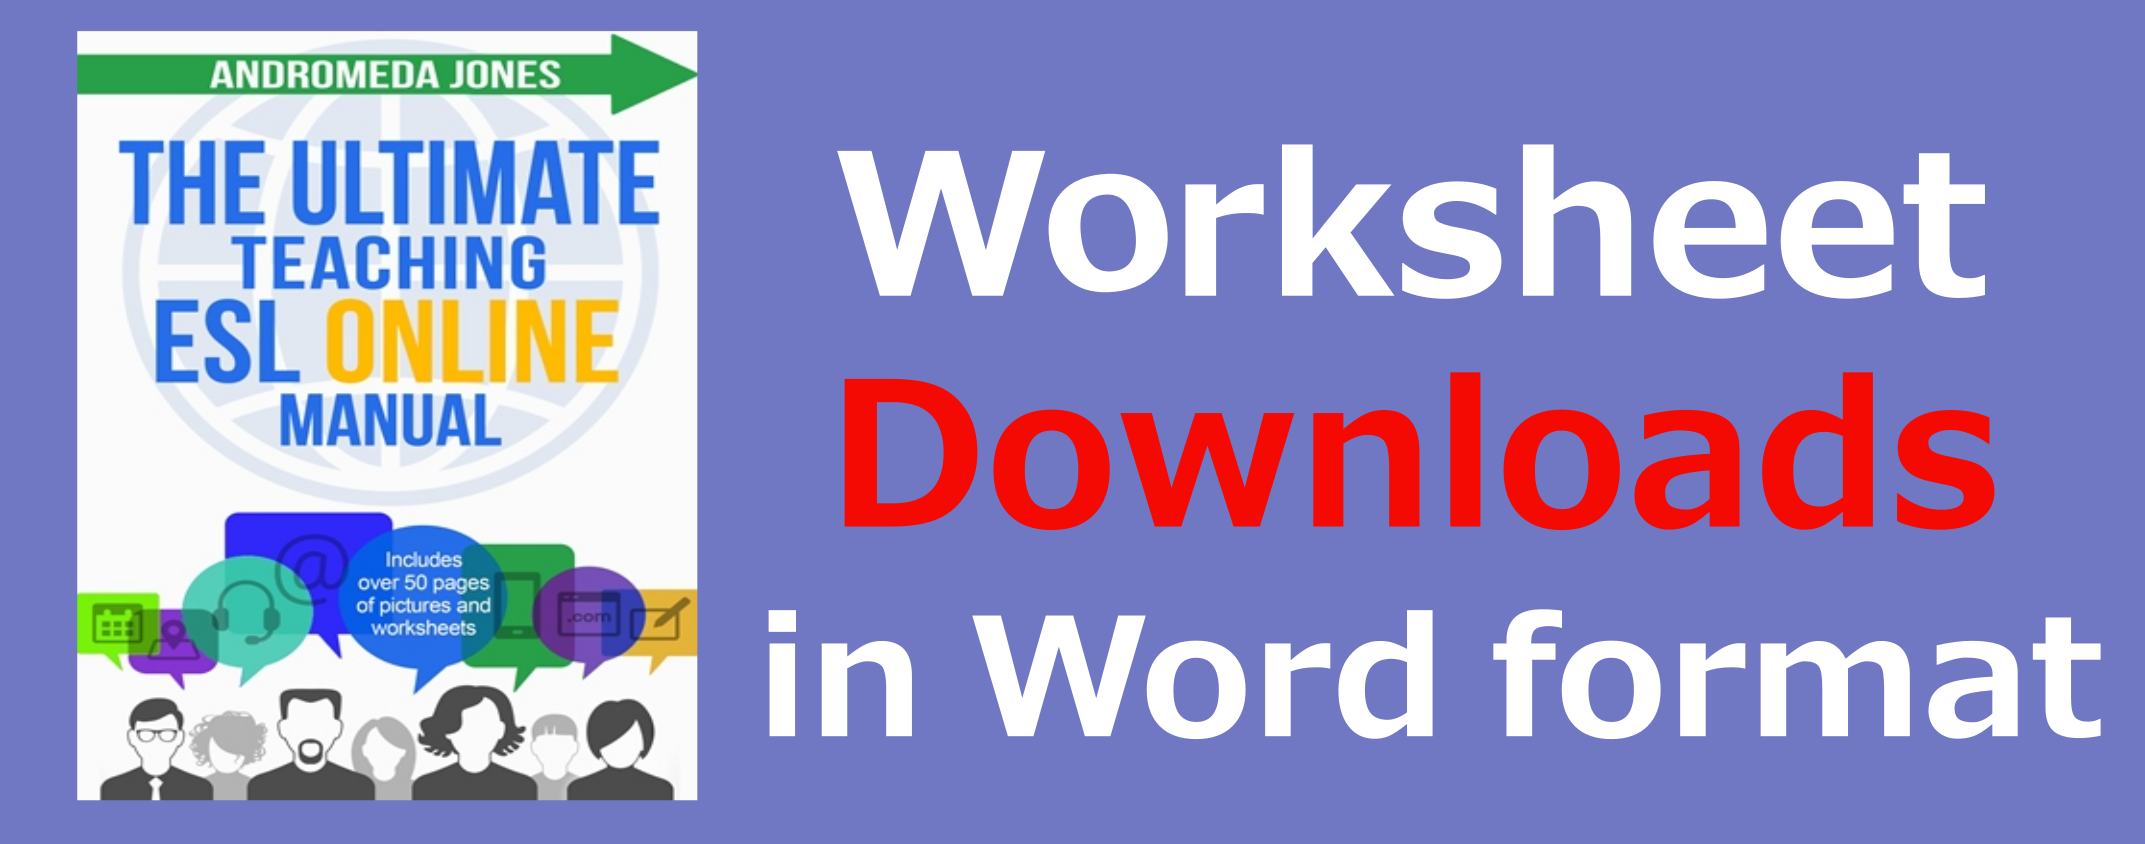 Protected: The Ultimate ESL Online Worksheets in Word format graphic